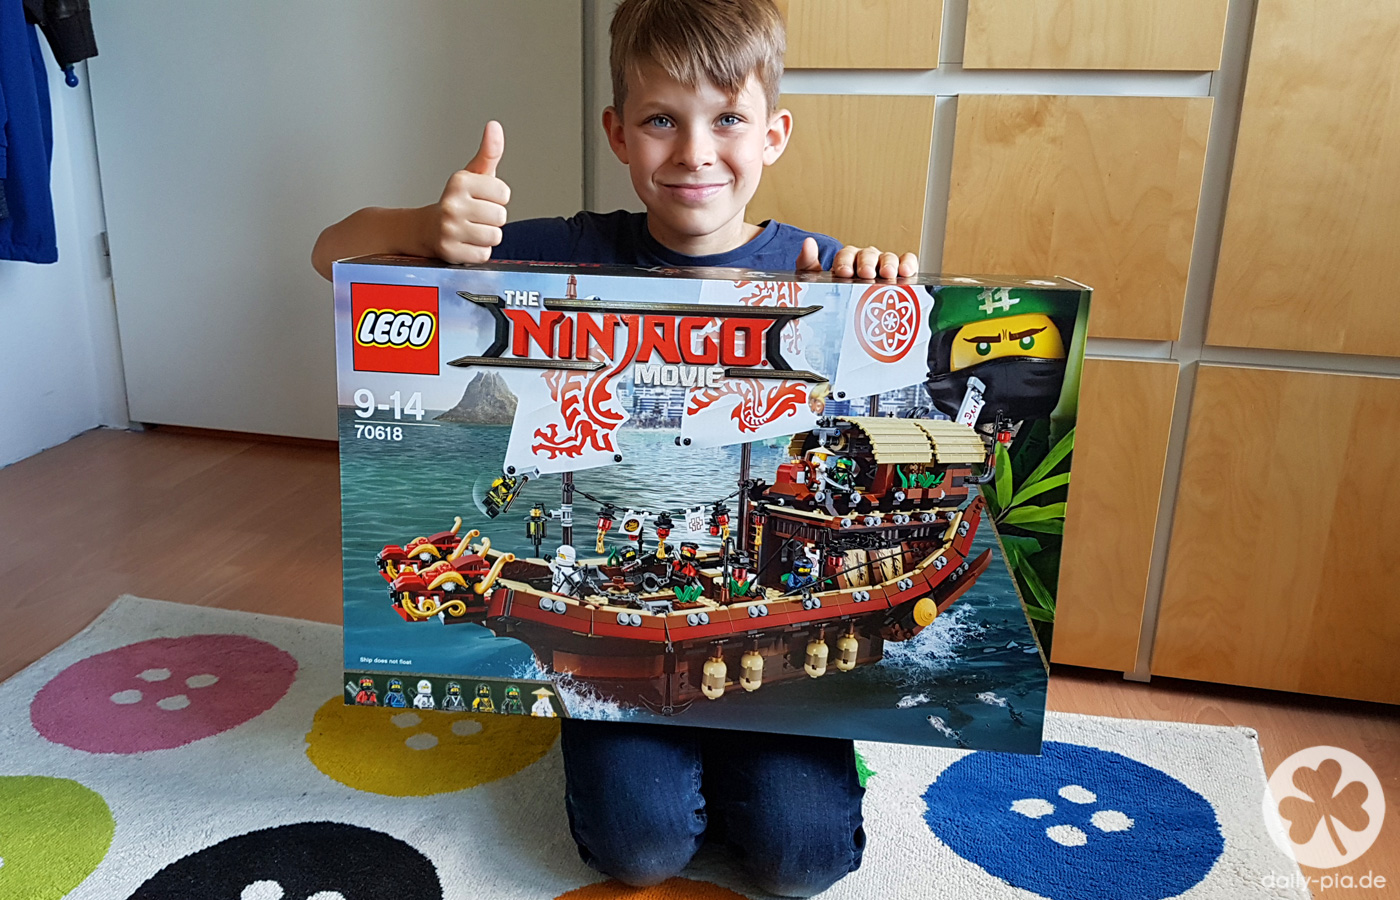 The Lego Ninjago Movie & der Ninja-Flugsegler